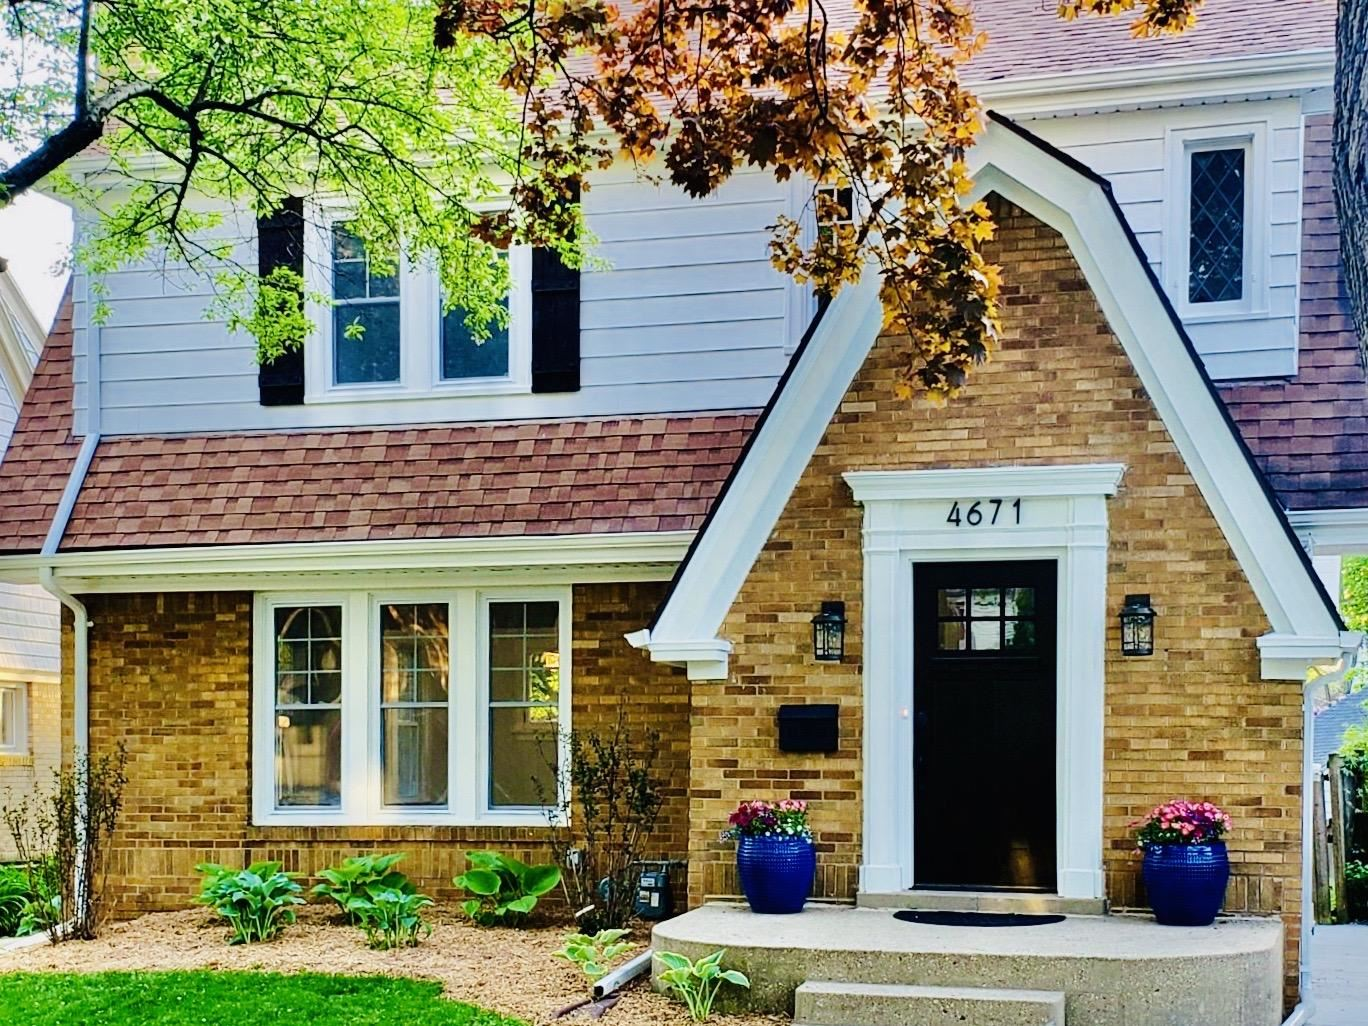 4671 N Morris Blvd, Whitefish Bay, WI 53211 - #: 1680982